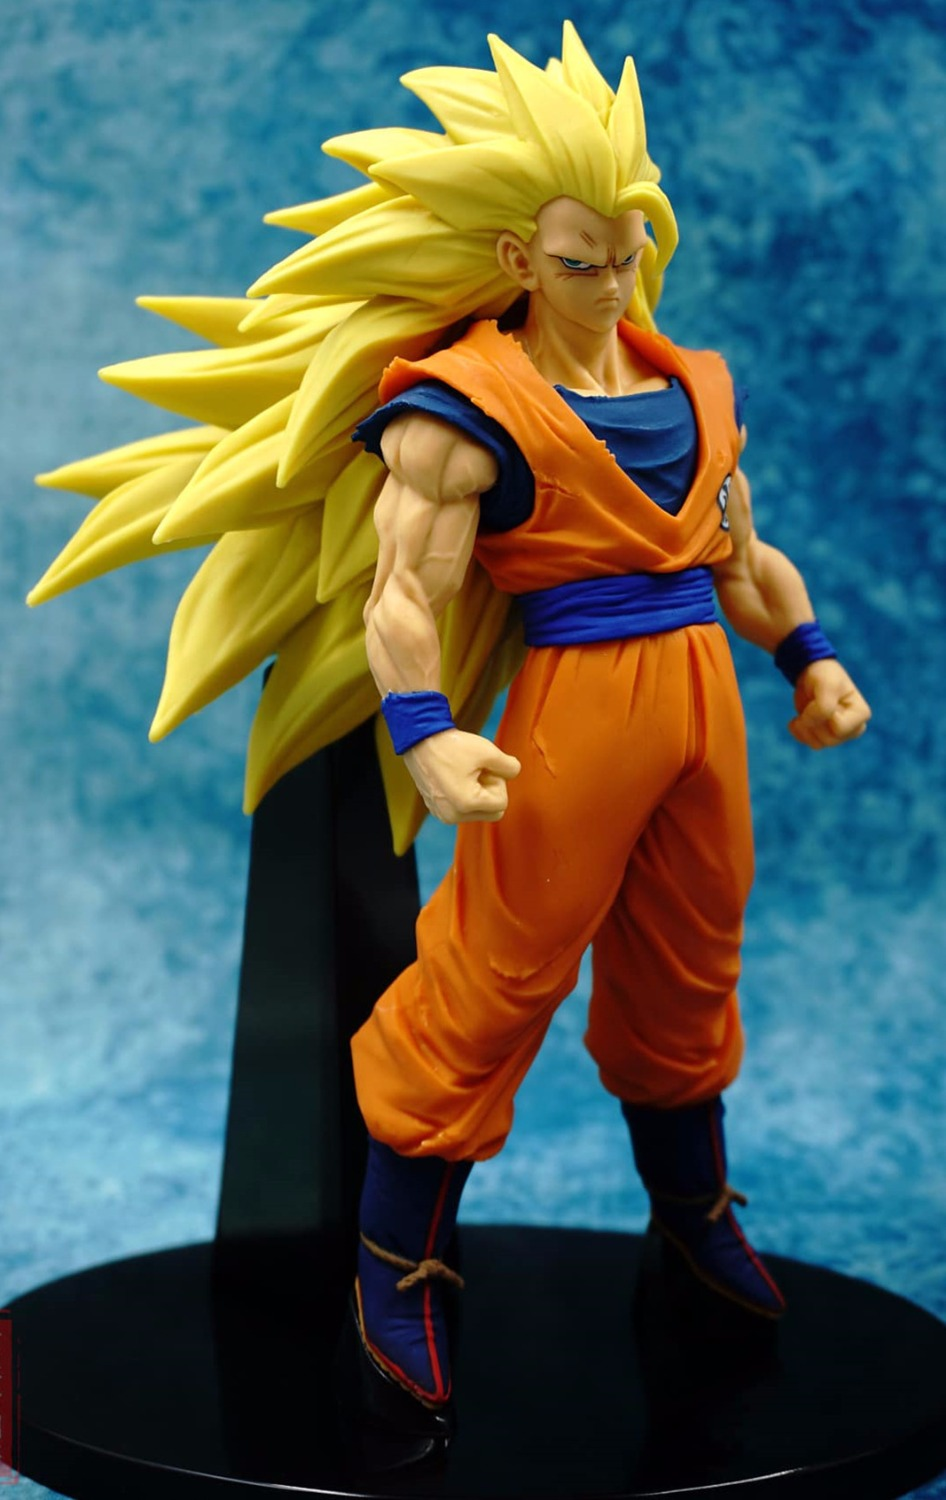 Huong Anime 20 CM Dragon Ball Z Son Gokou 1/8 scale painted Super Saiyan Son Gokou PVC Action Figure Collectible Model Toy anime dragon ball super saiyan 3 son gokou pvc action figure collectible model toy 18cm kt2841